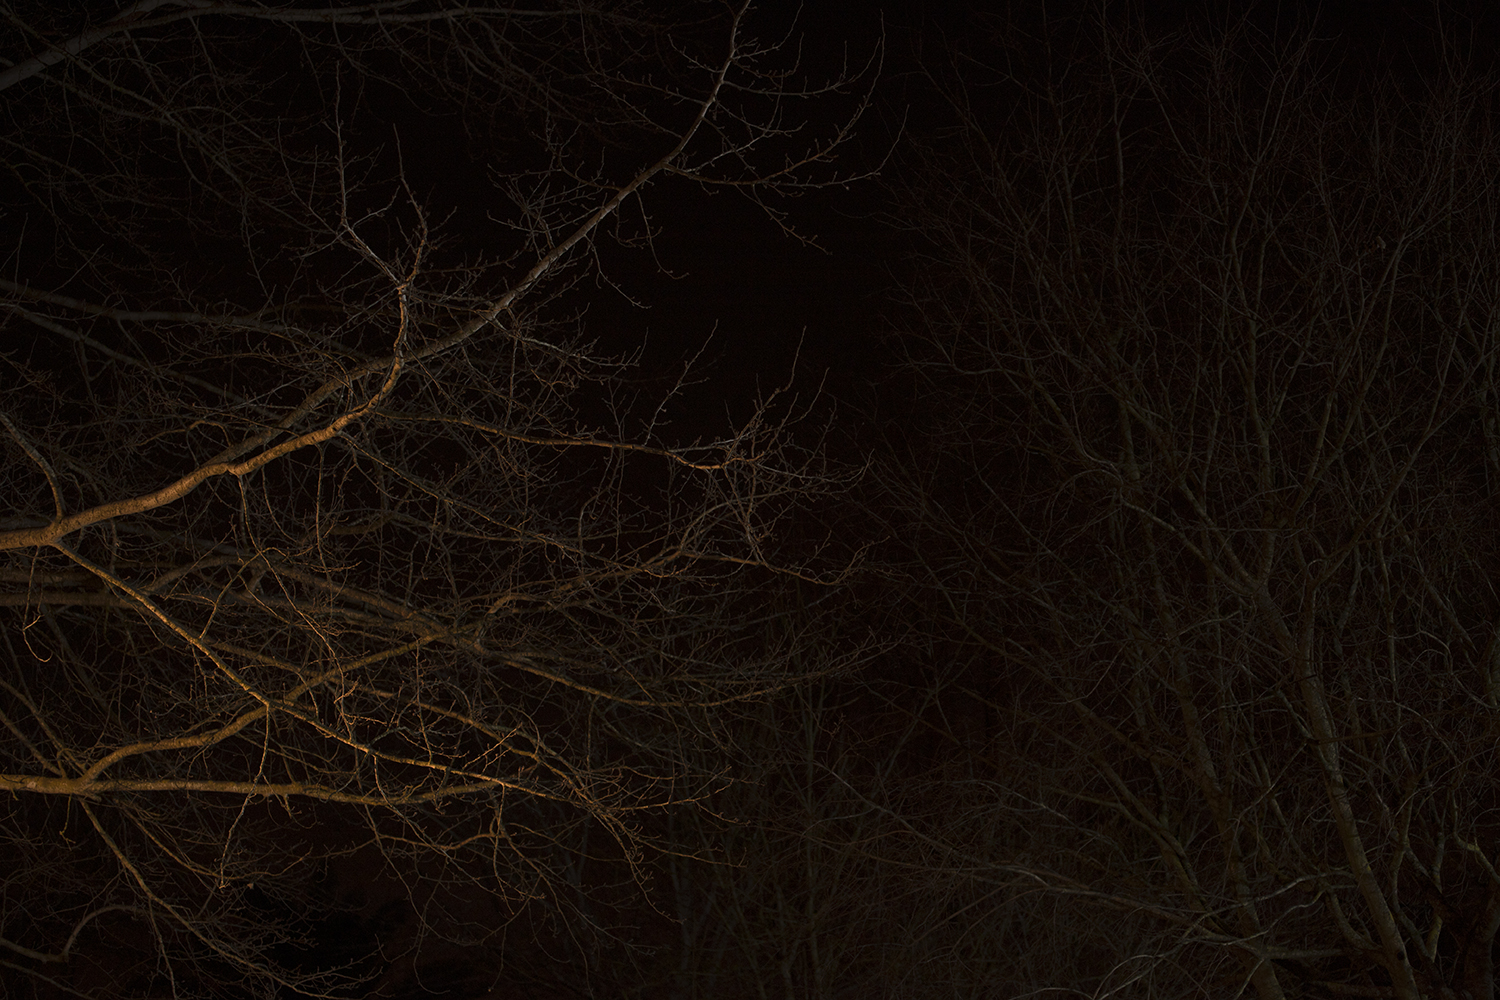 carina martins, we wander in circles through the night  and are consumed by fire - tree branches at night